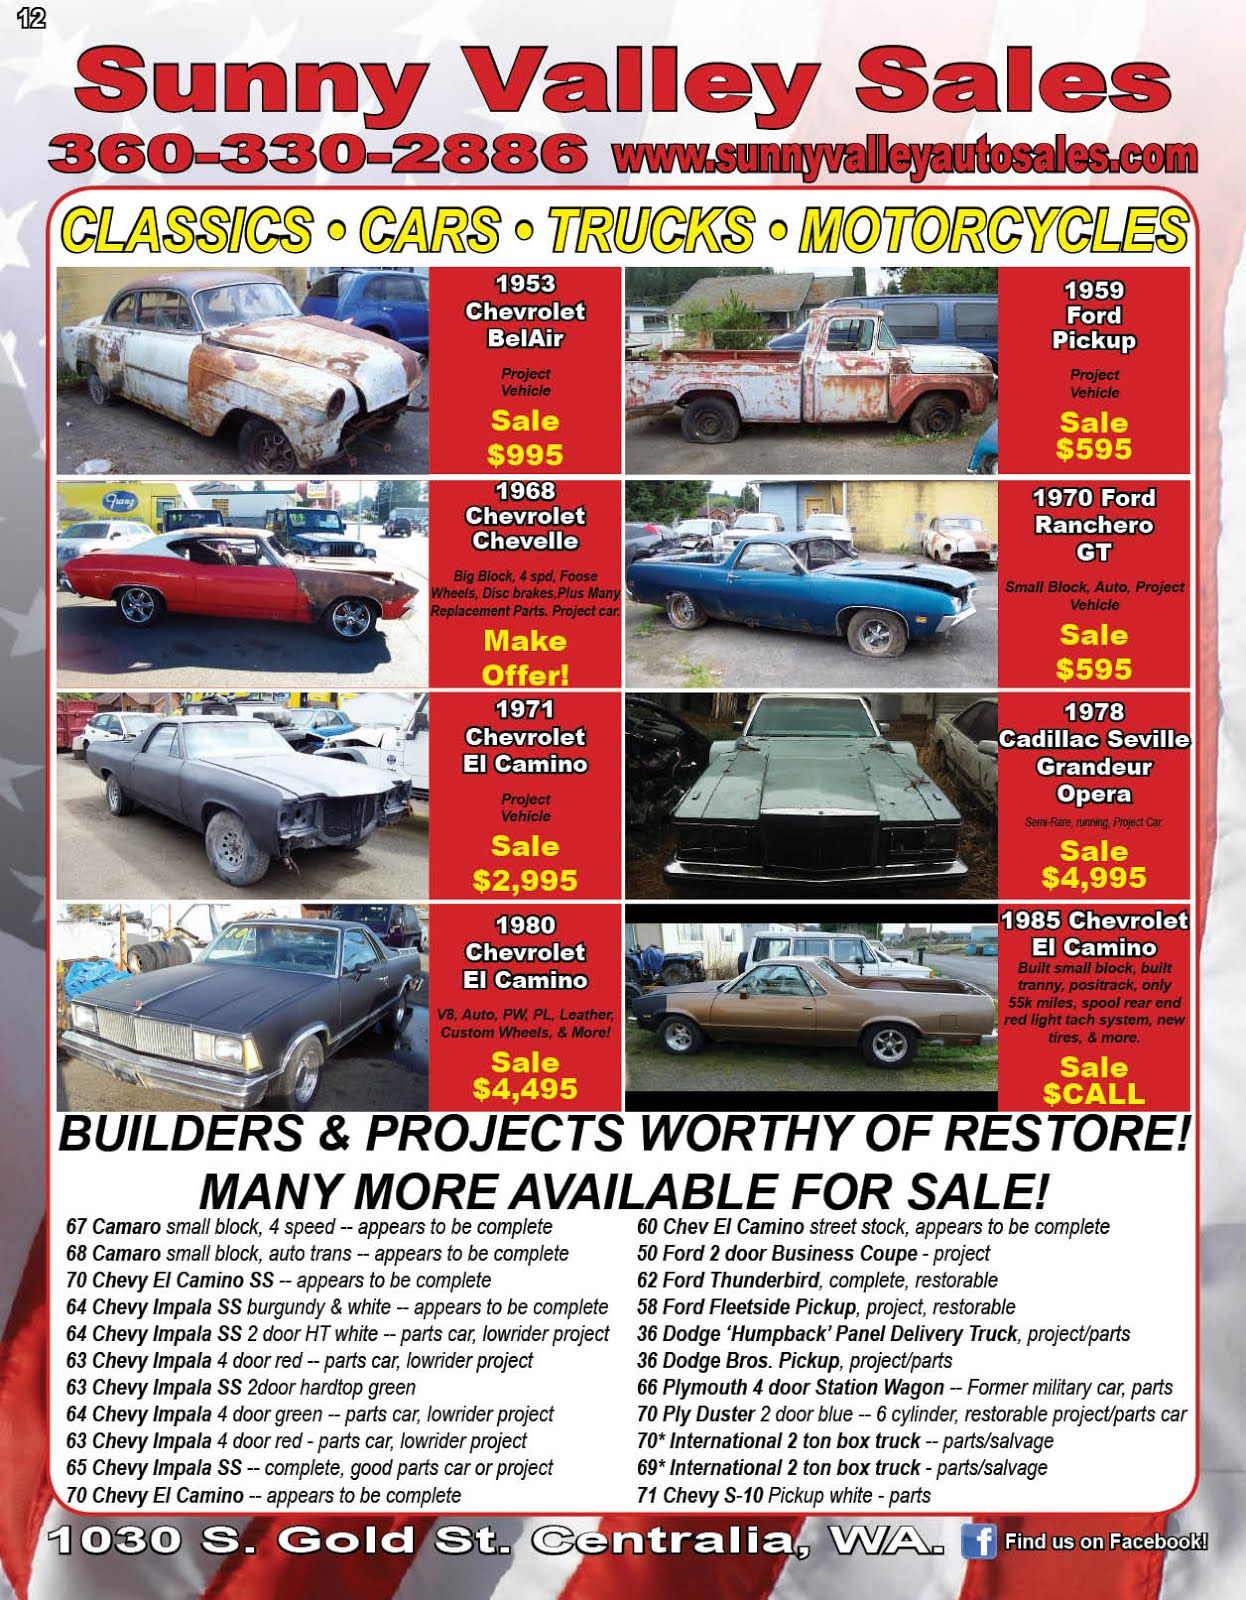 Sunny Valley Sales Used Jeeps, Trucks, Cars, Motorcycles, ATVs, Classics, More!!